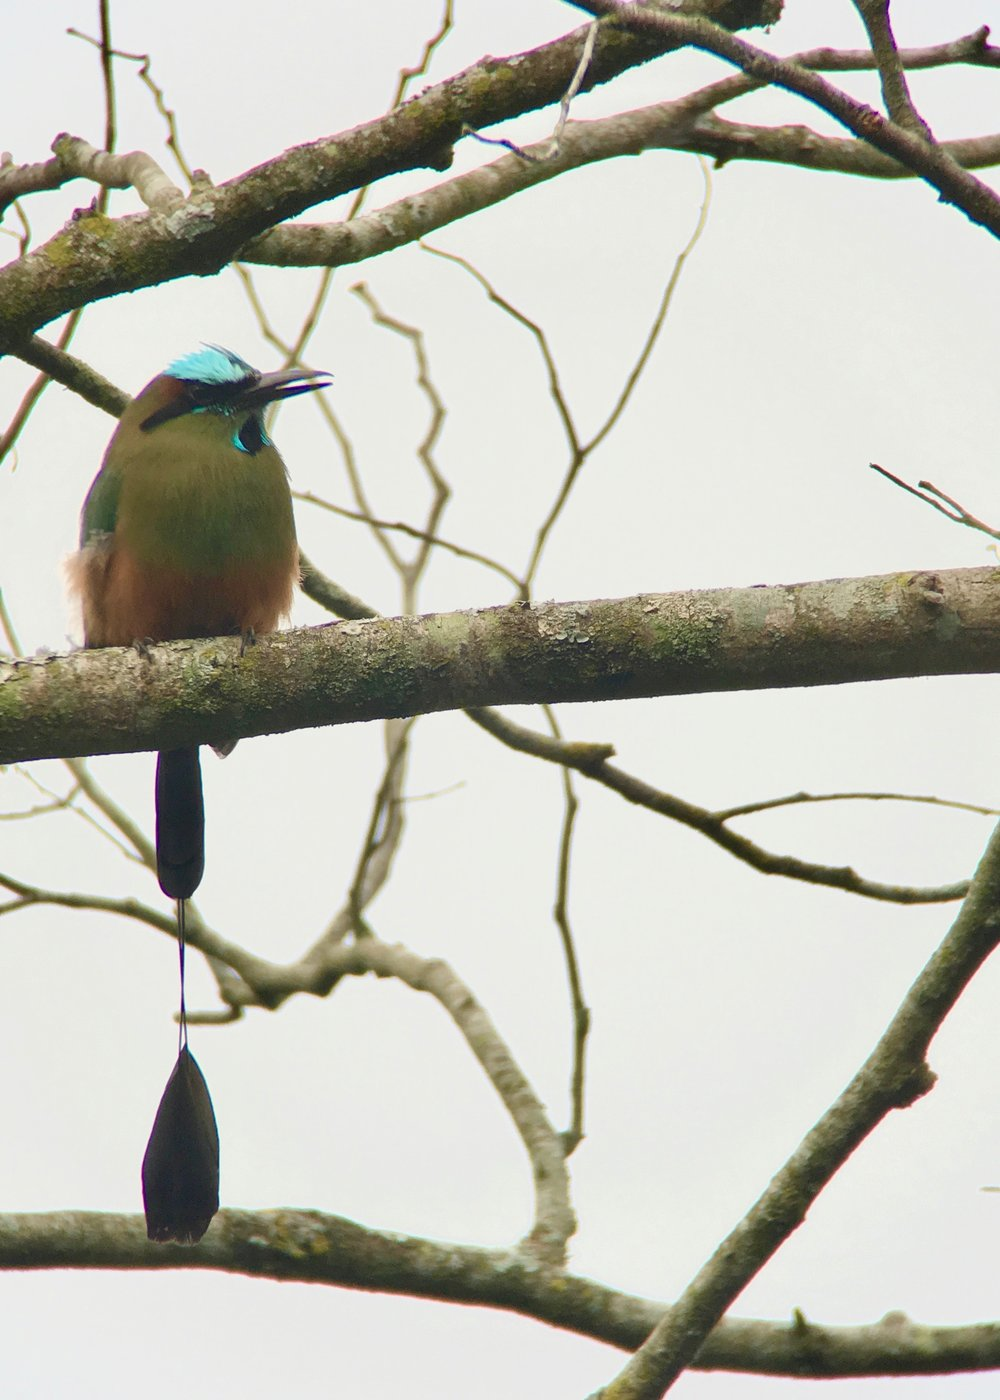 Turquoise-browed motmot.